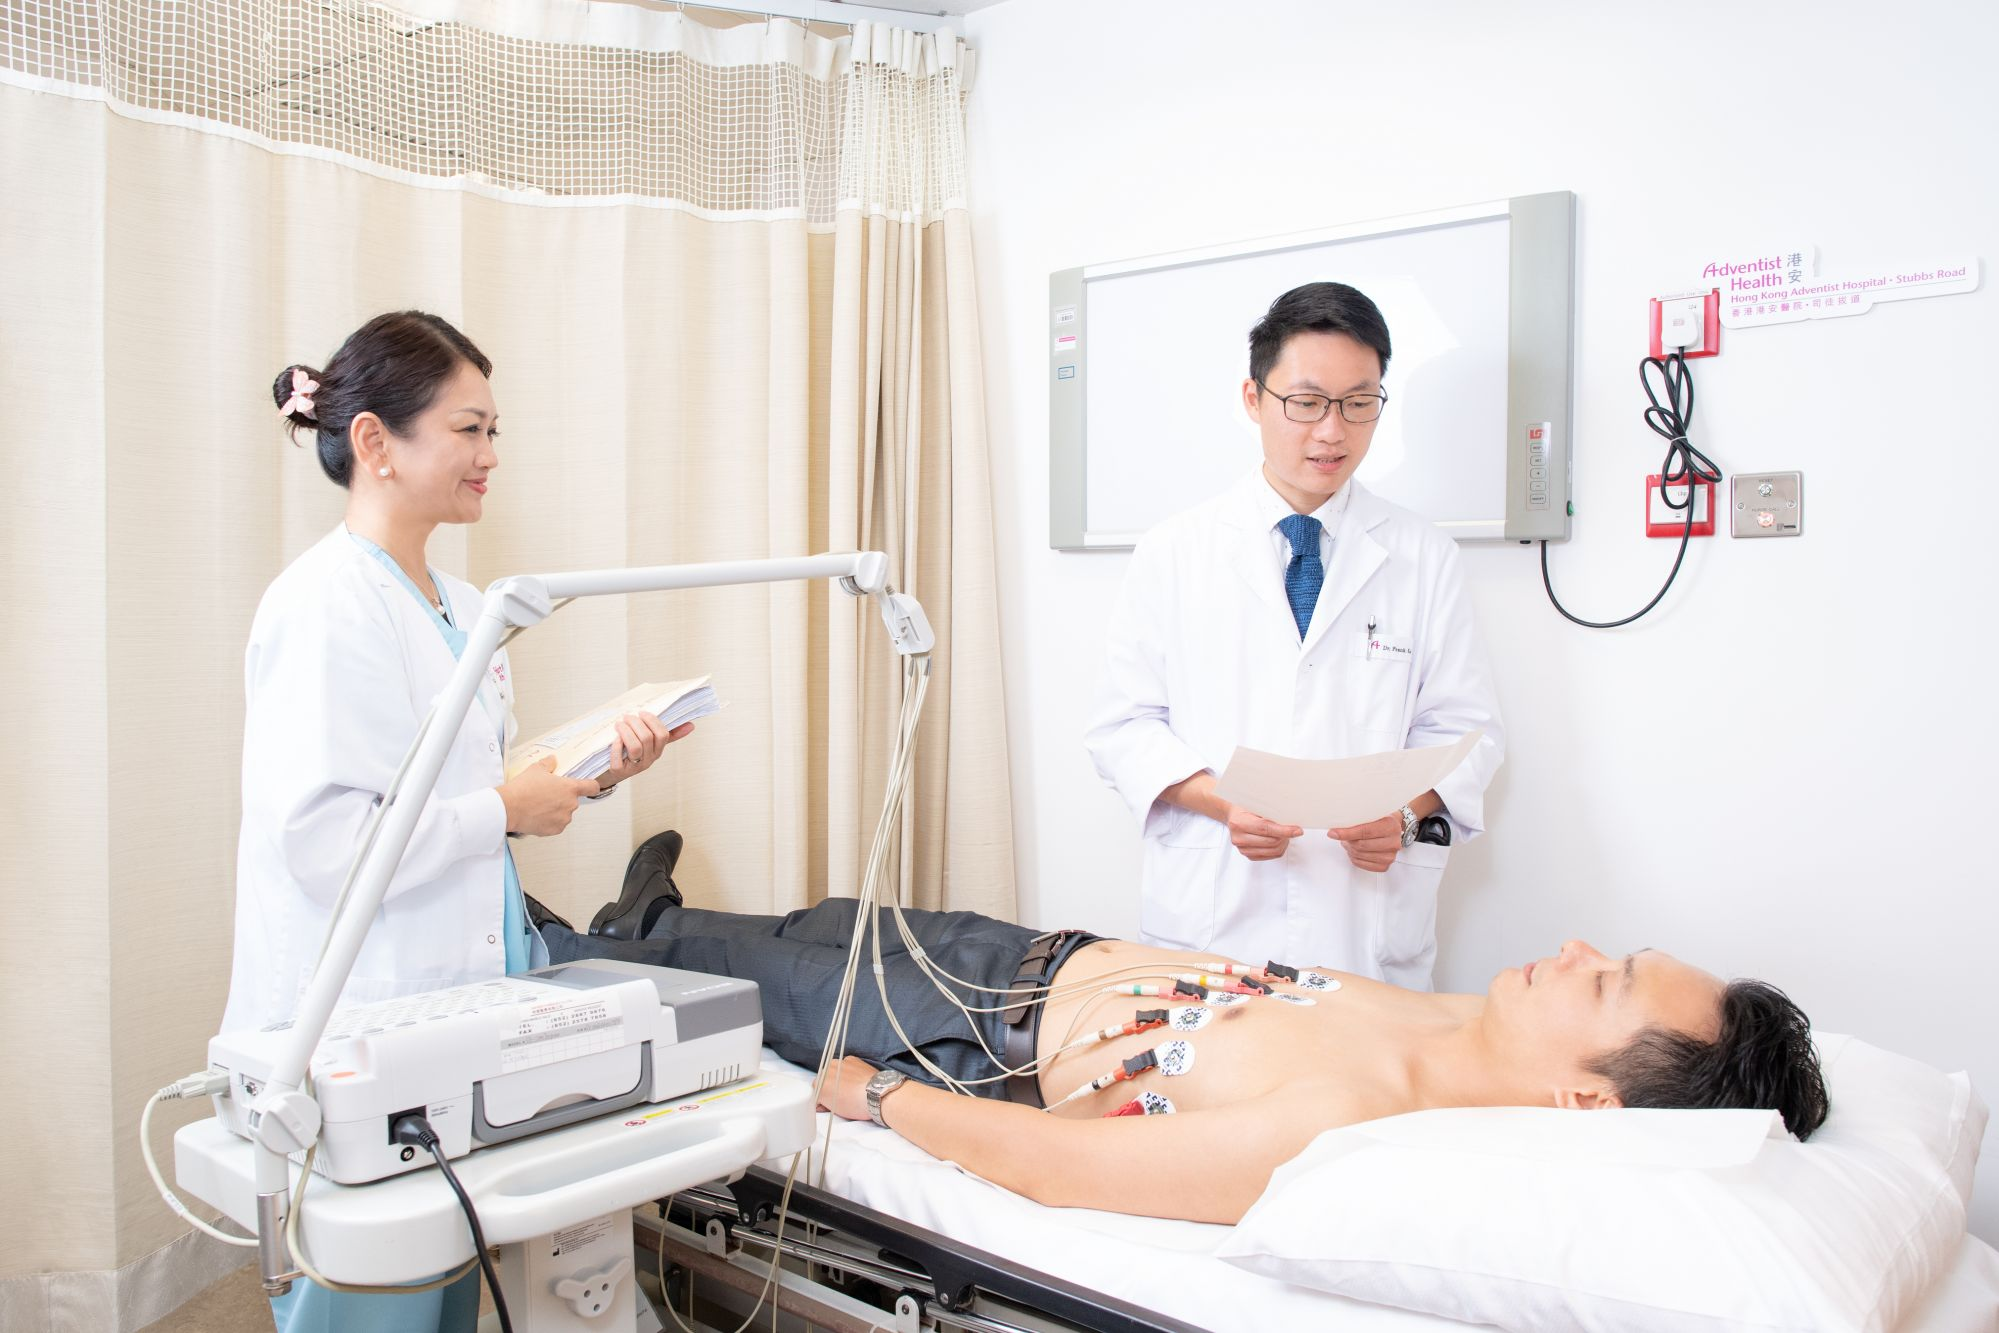 Hong Kong Adventist Hospital – Stubbs Road Introduces Rapid Access Chest Pain Clinic